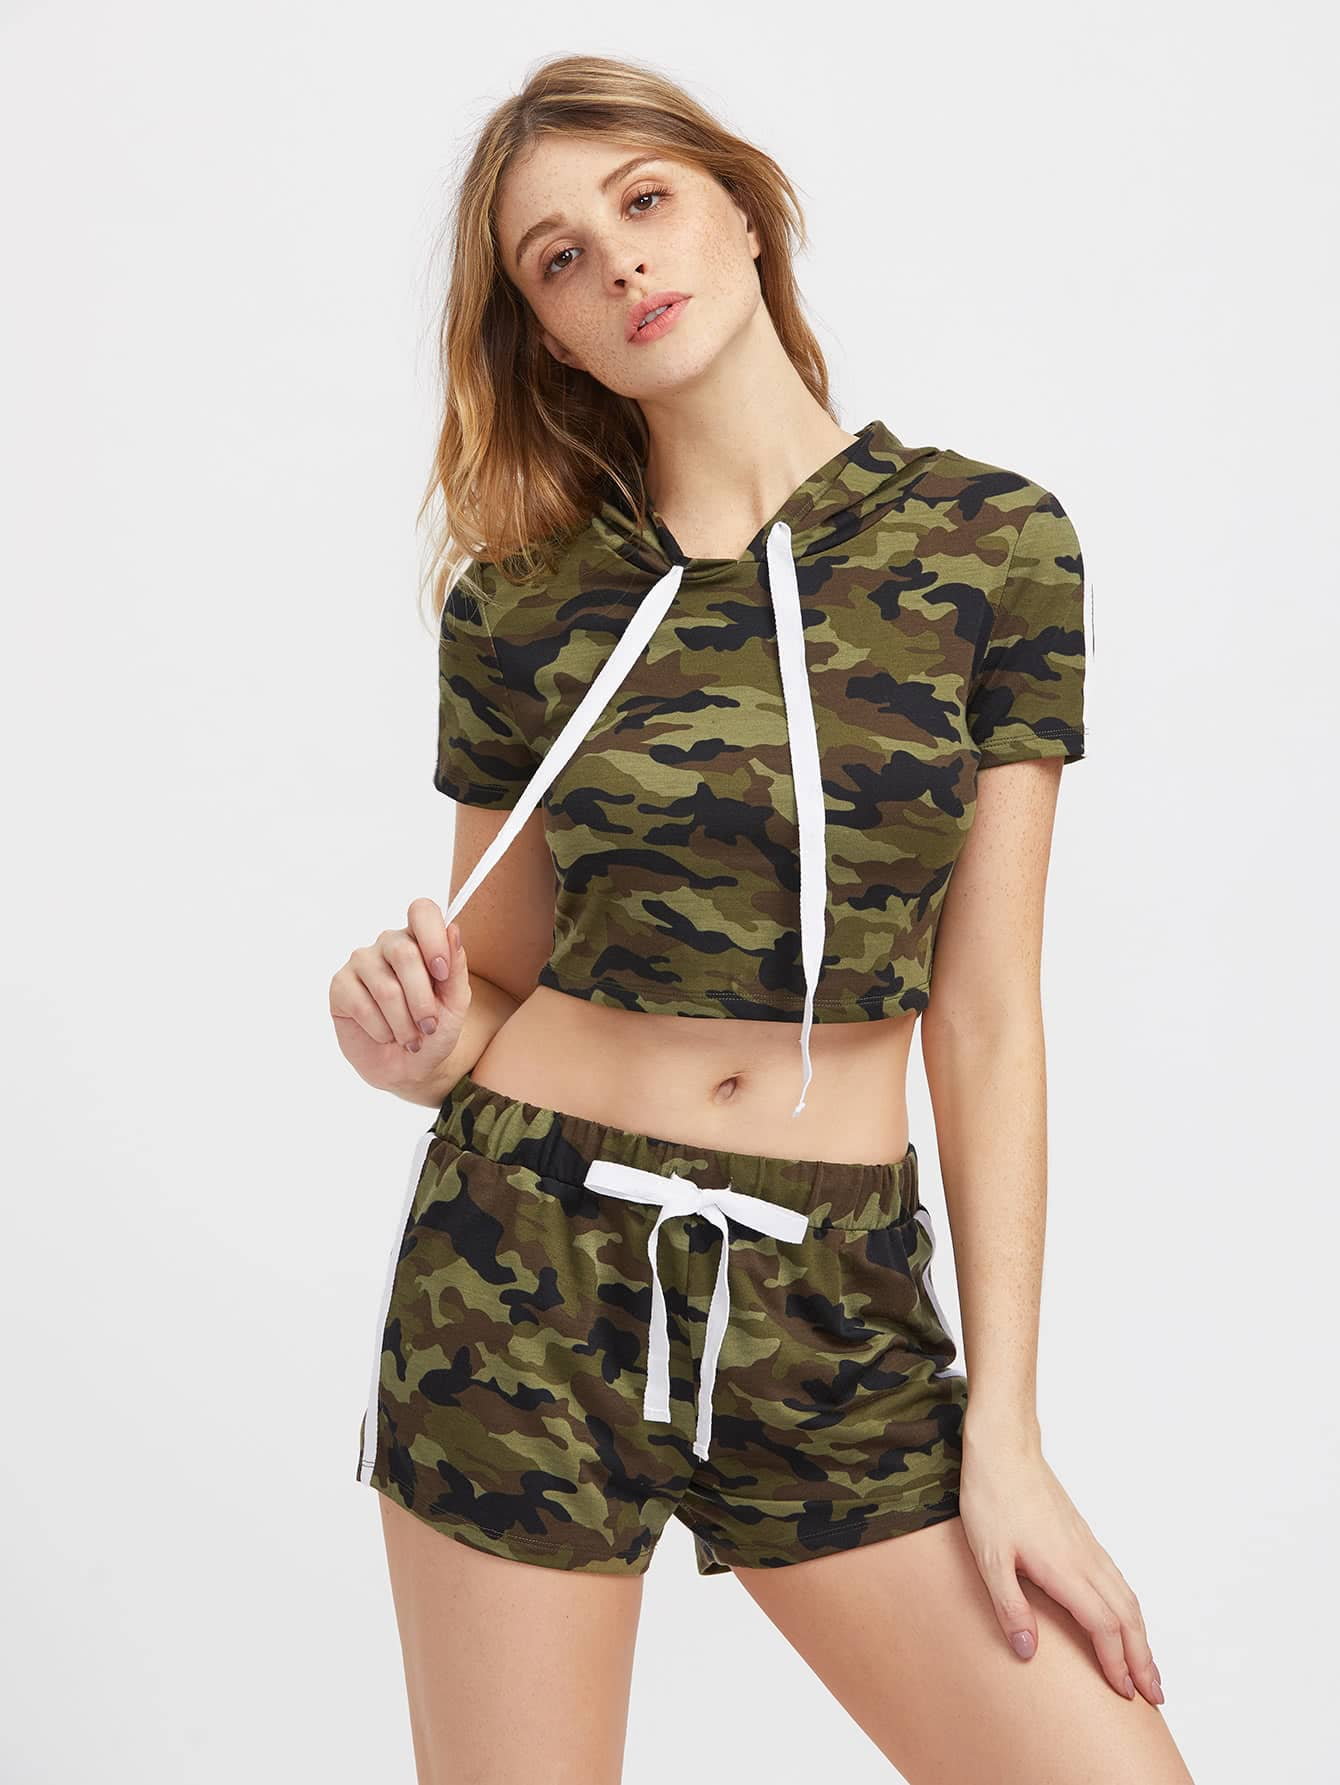 Hooded Crop Camo Tee And Shorts Activewear Set twopiece170519702